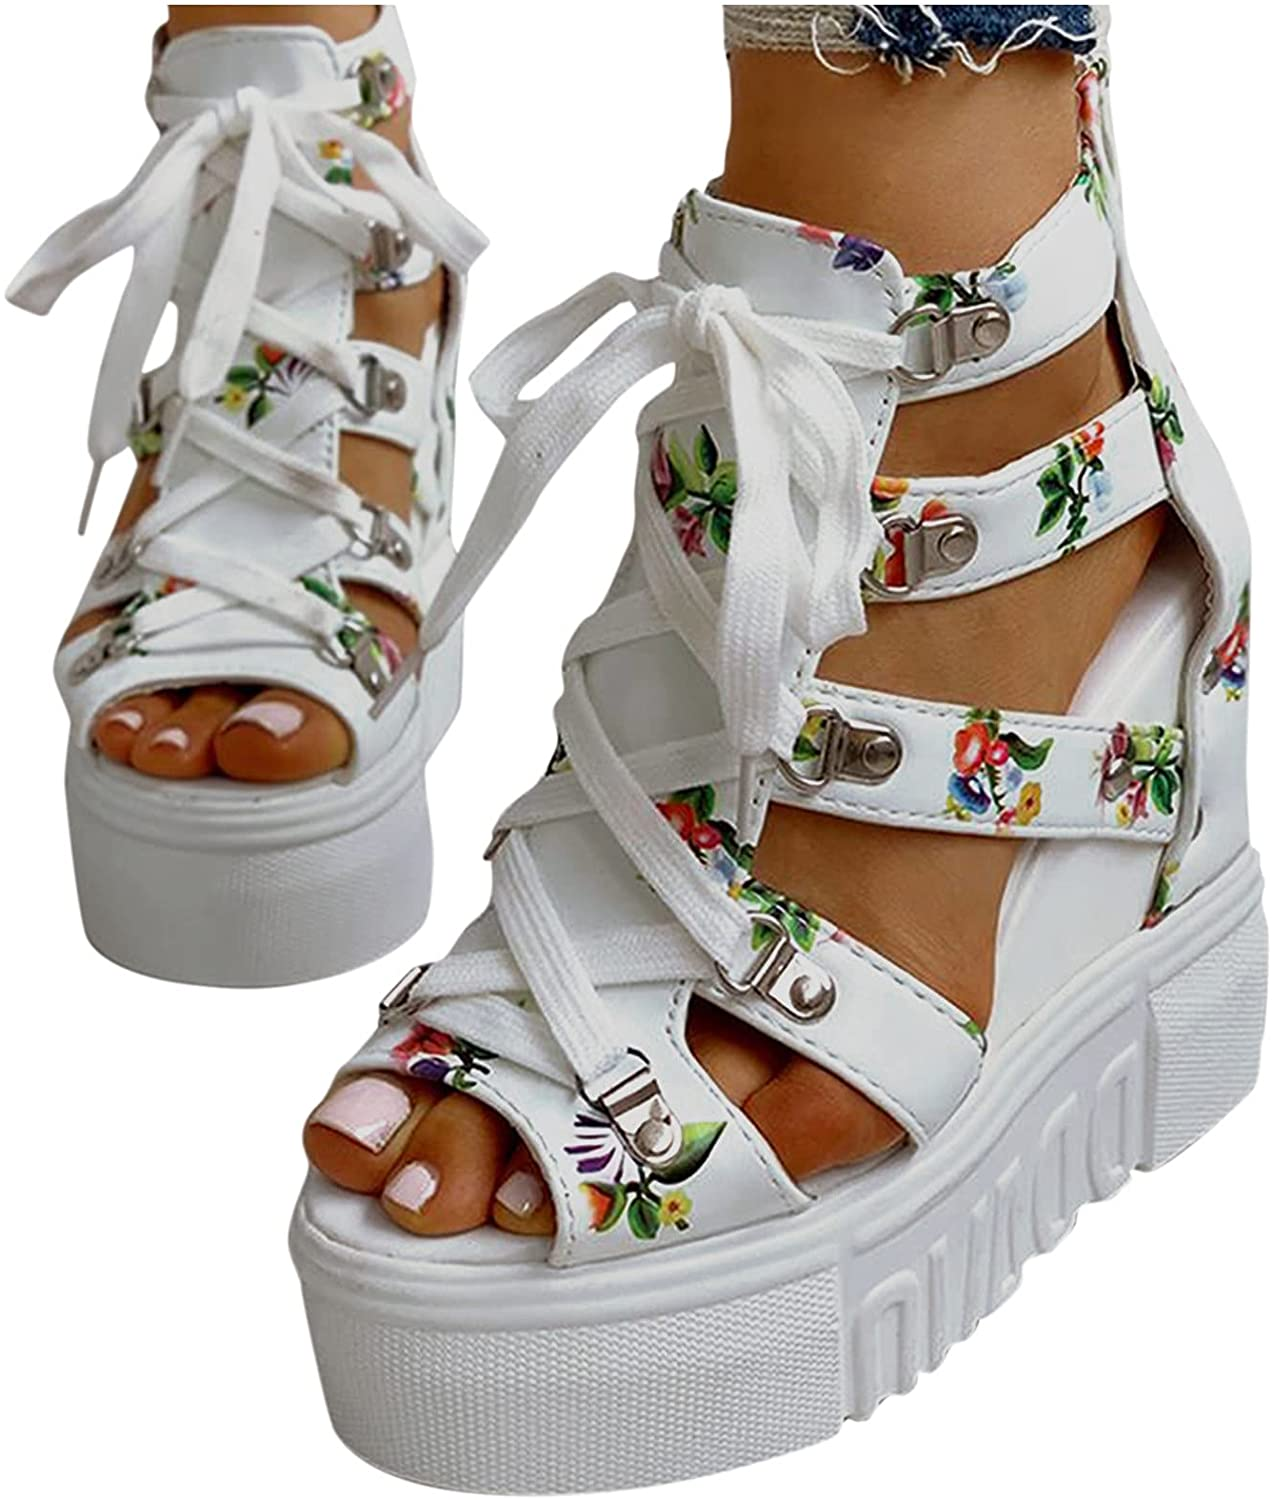 Popular brand Open Toe Sandals for Women Zippered Factory outlet Strappy Waterproof Platform